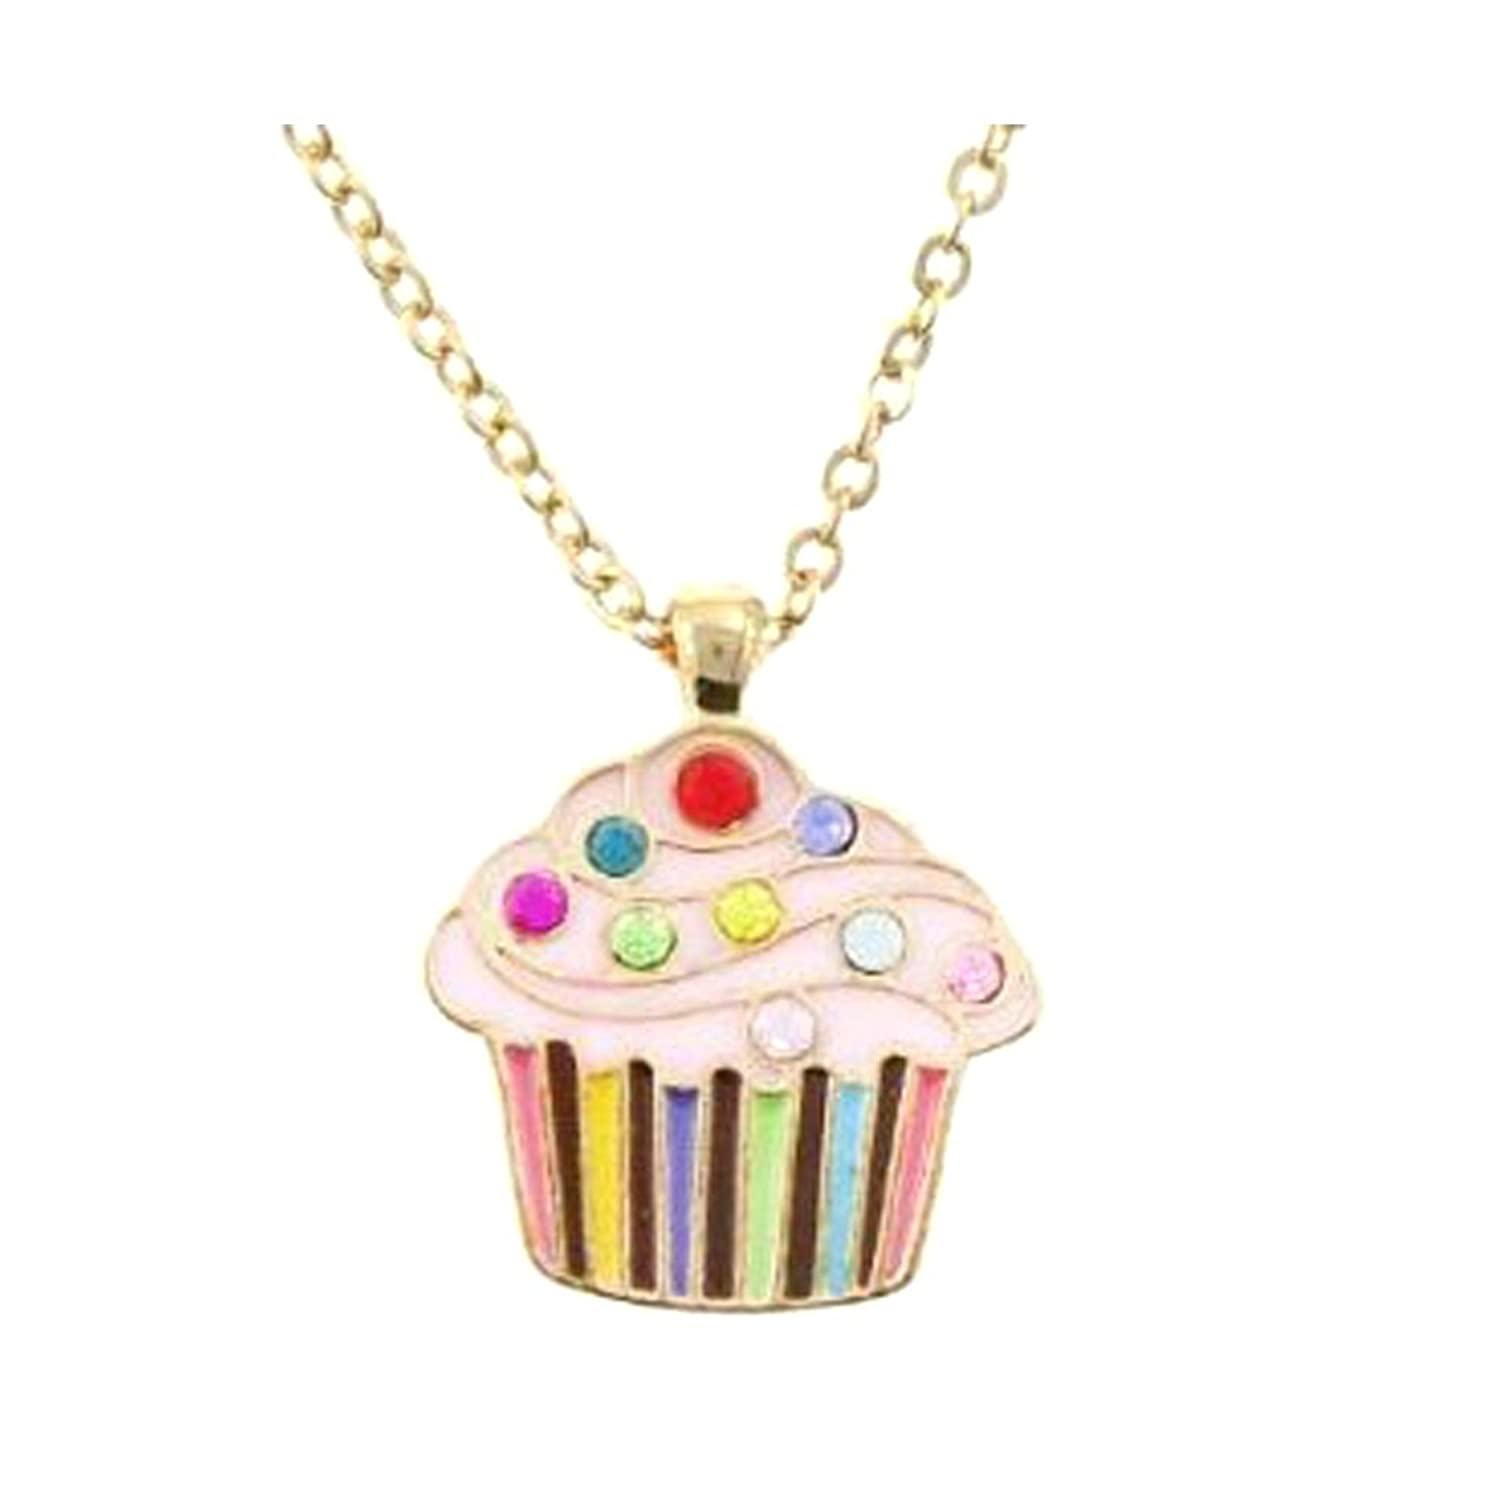 Kid's Cupcake Crystal and Enamel Pendant Necklace in Cup Cake shaped Gift Jewelry BOX-colors may vary